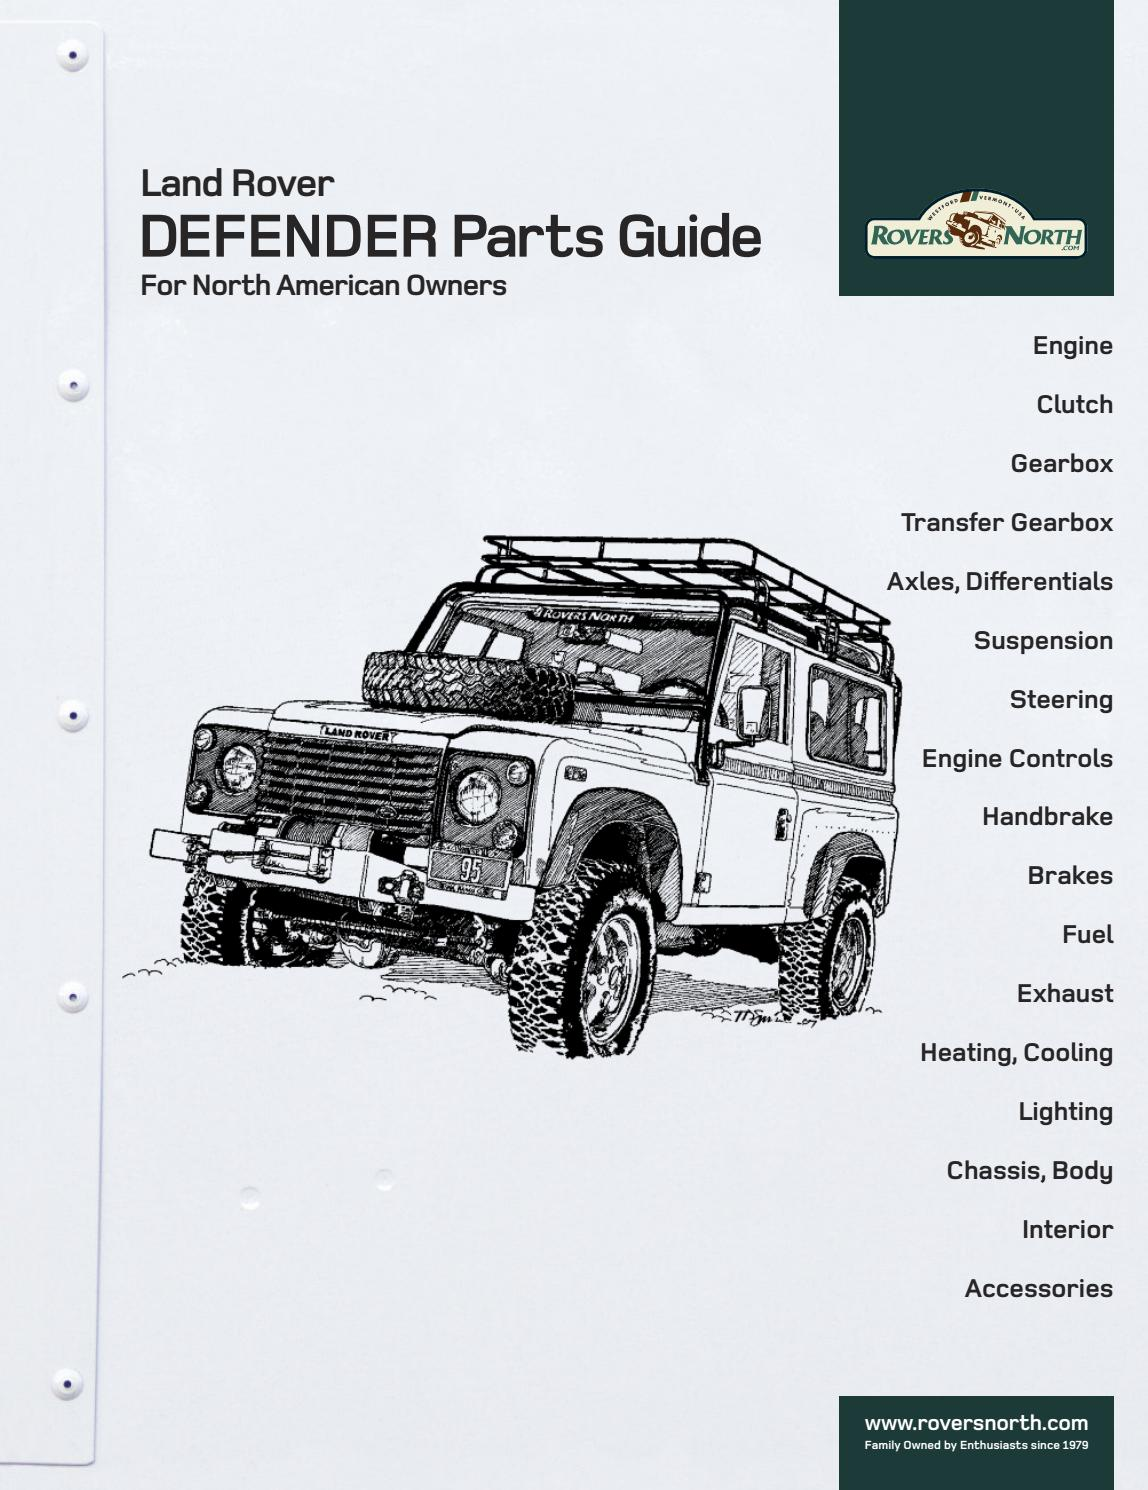 Land Rover DEFENDER Parts Guide For North American Owners by Rovers North -  issuu